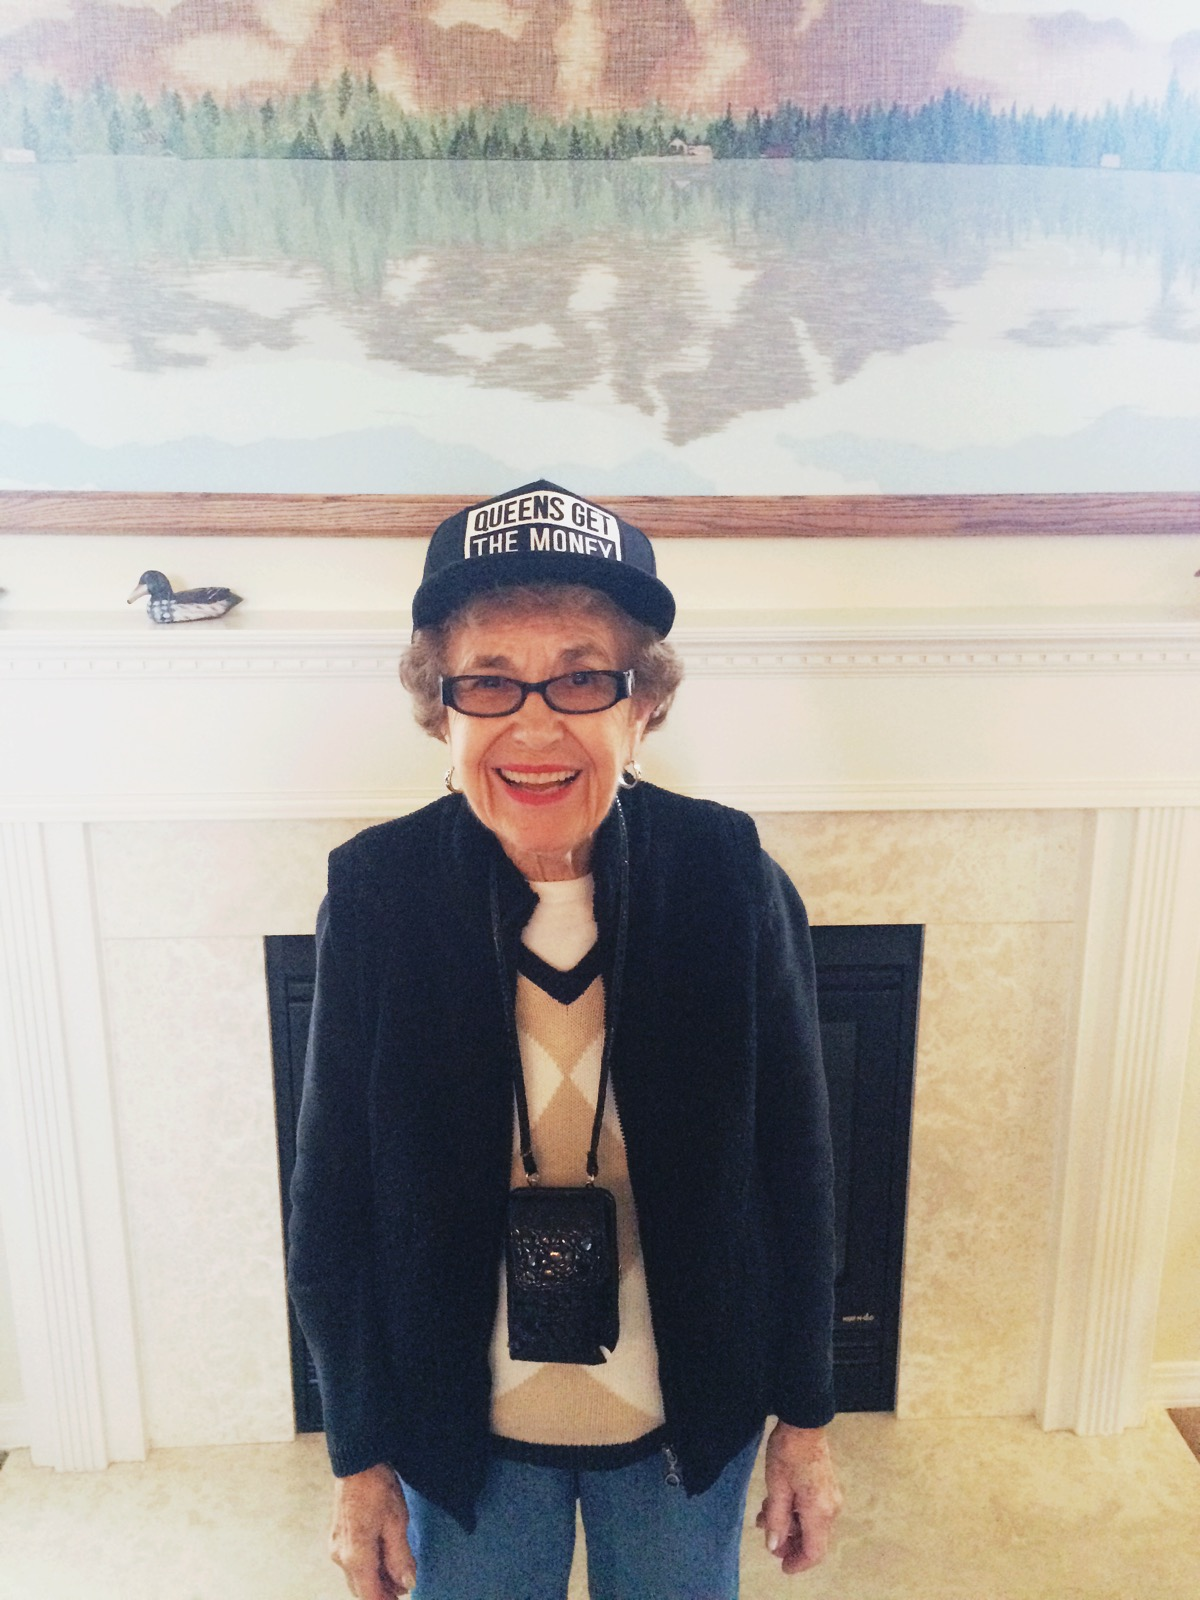 Grandma S.being a great sport and wearing that youthful hat =]